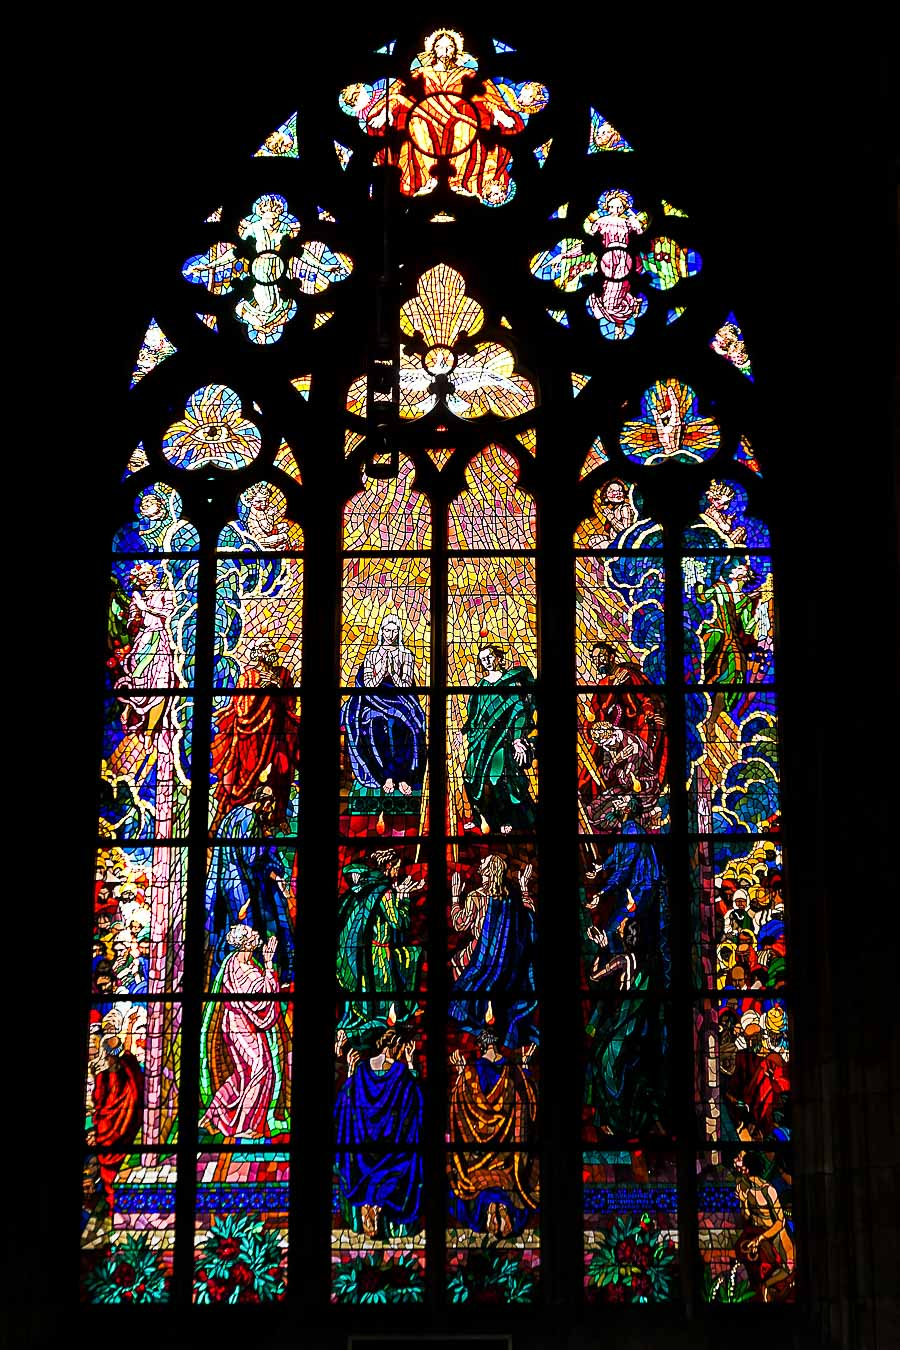 Prague Architecture Photos - St. Vitus Cathedral Stained Glass Windows